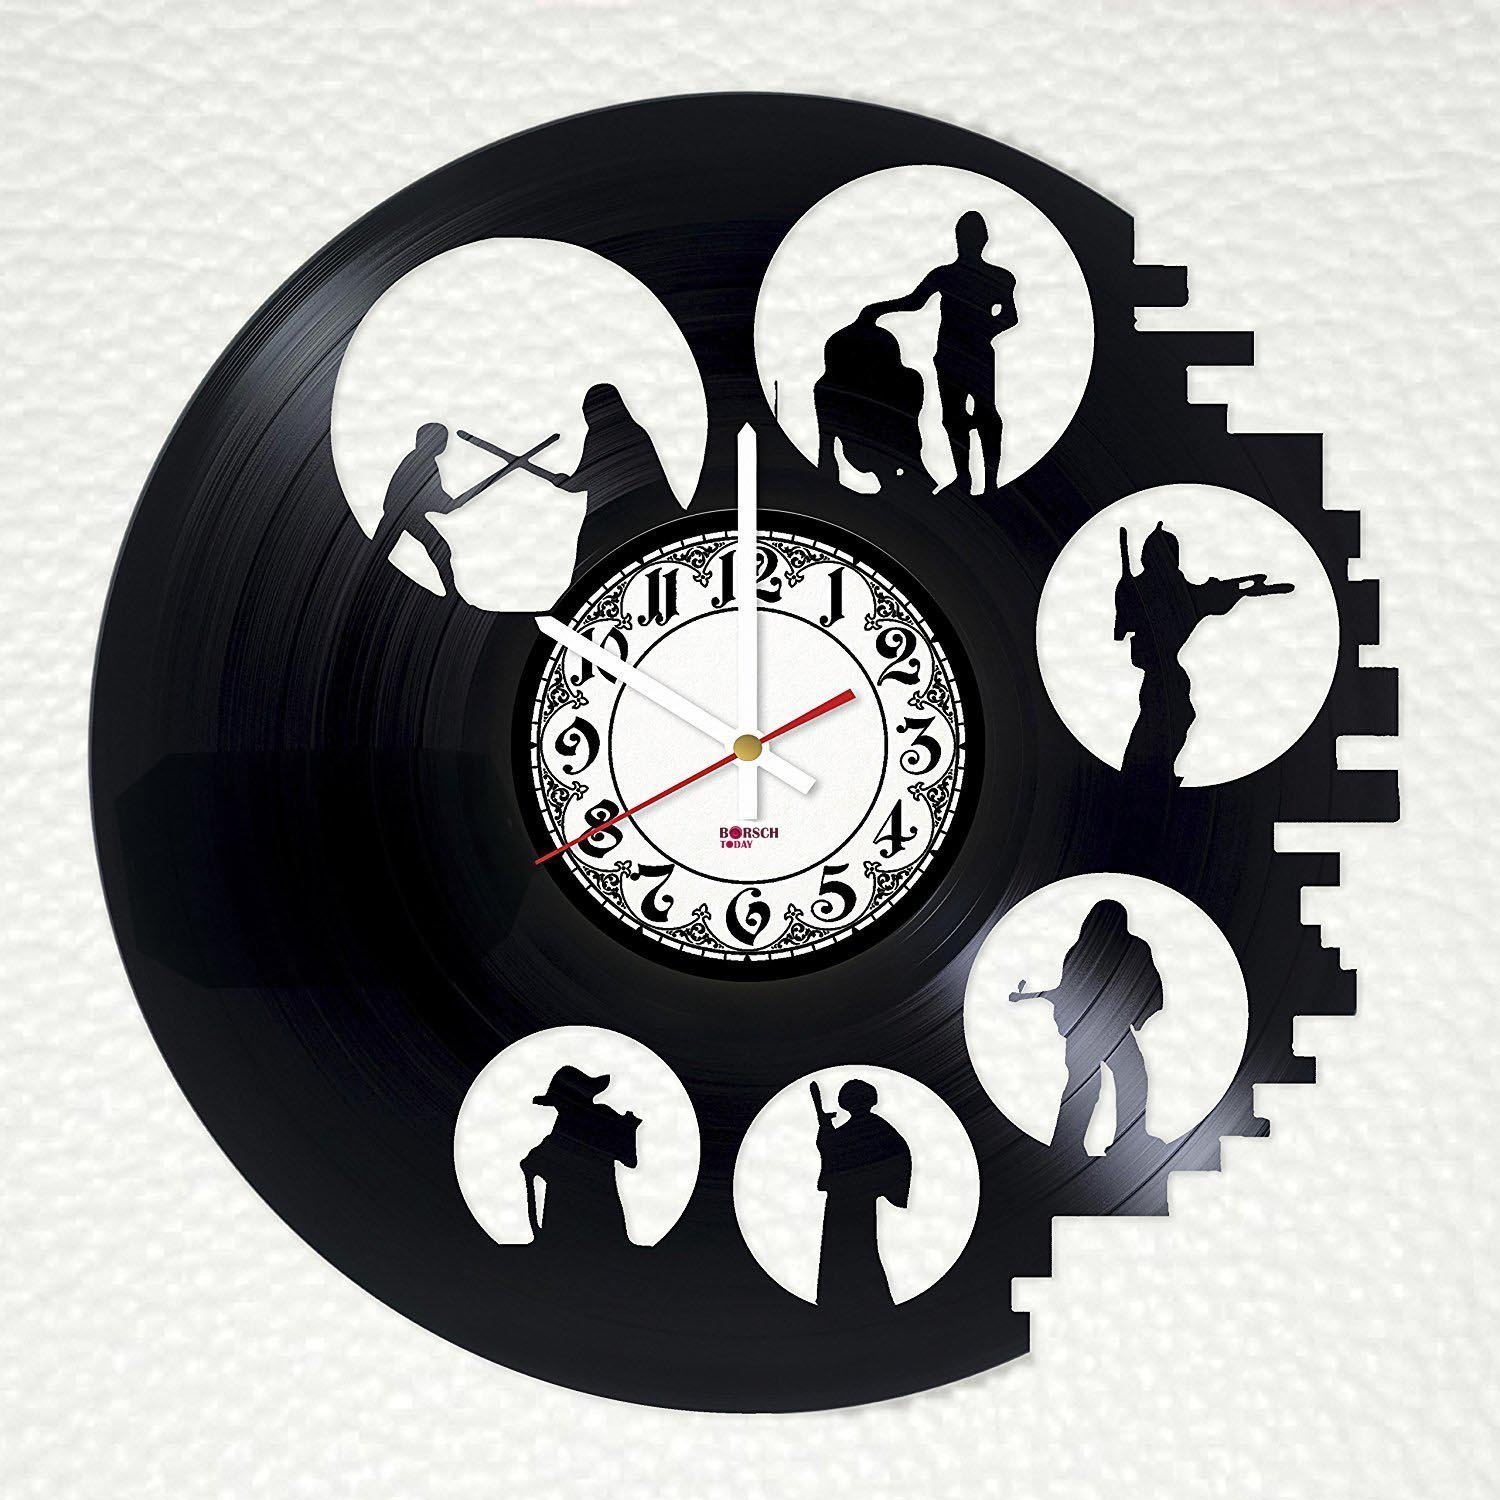 Star Wars Trilogy Handmade Vinyl Record Wall Clock - Get unique home room or office wall decor - Gift ideas for men and women – Fantasy Heroes Unique Modern Art Design